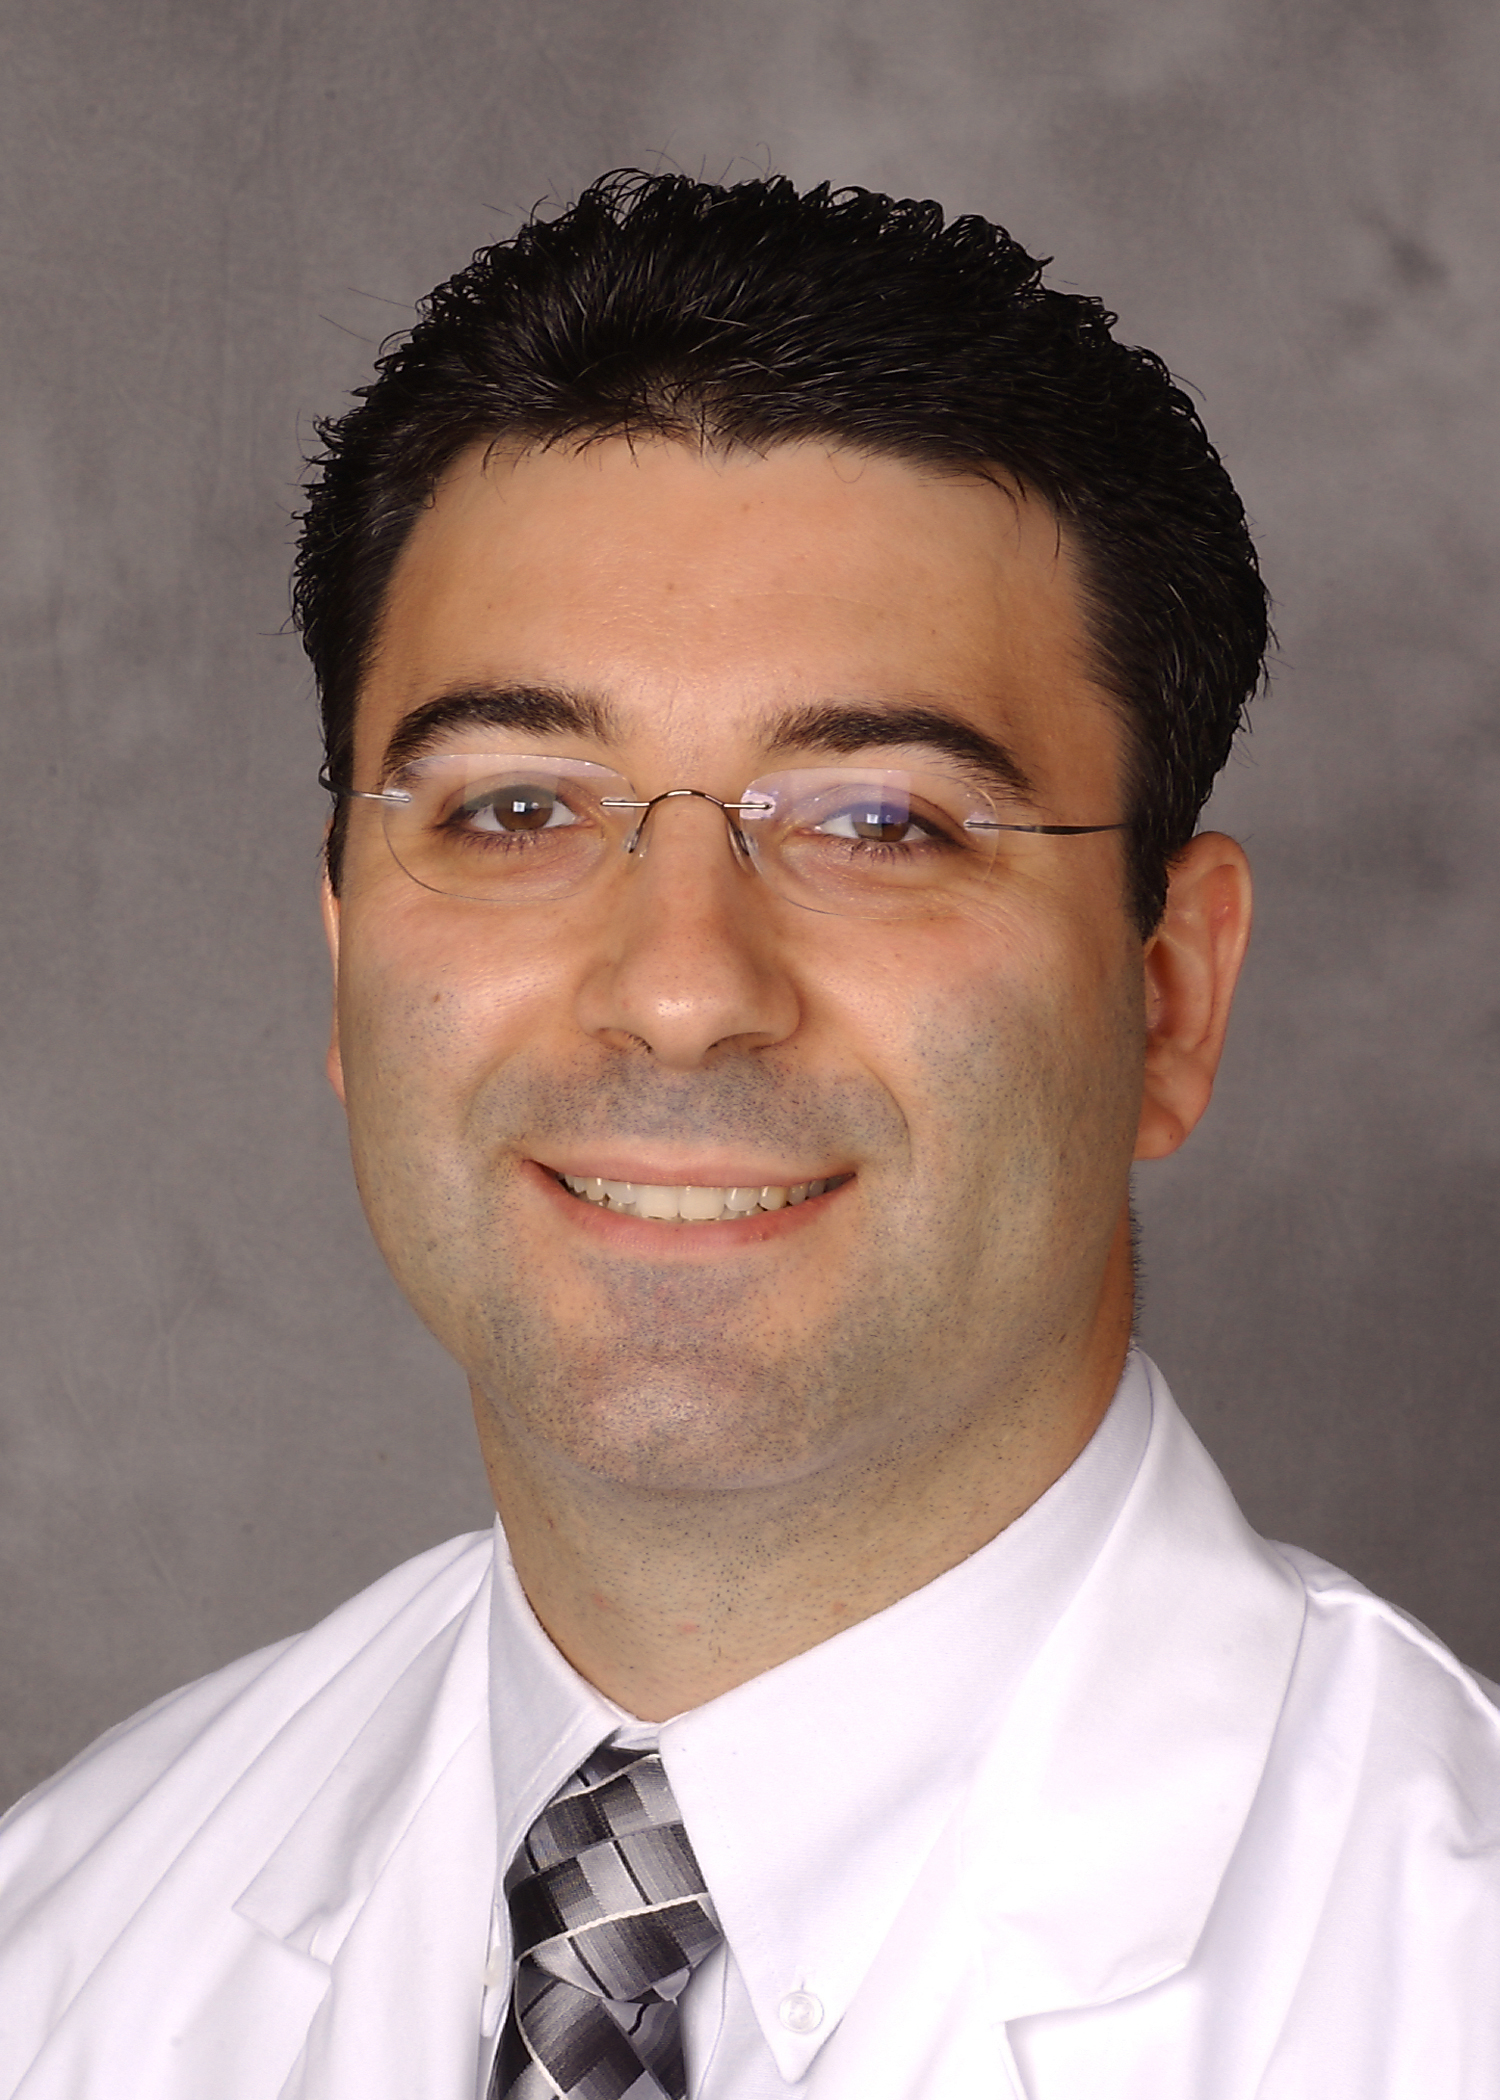 know where to go for stroke care upstate offers services unique dr eric deshaies md is one of the neurosurgeons at upstate listen to